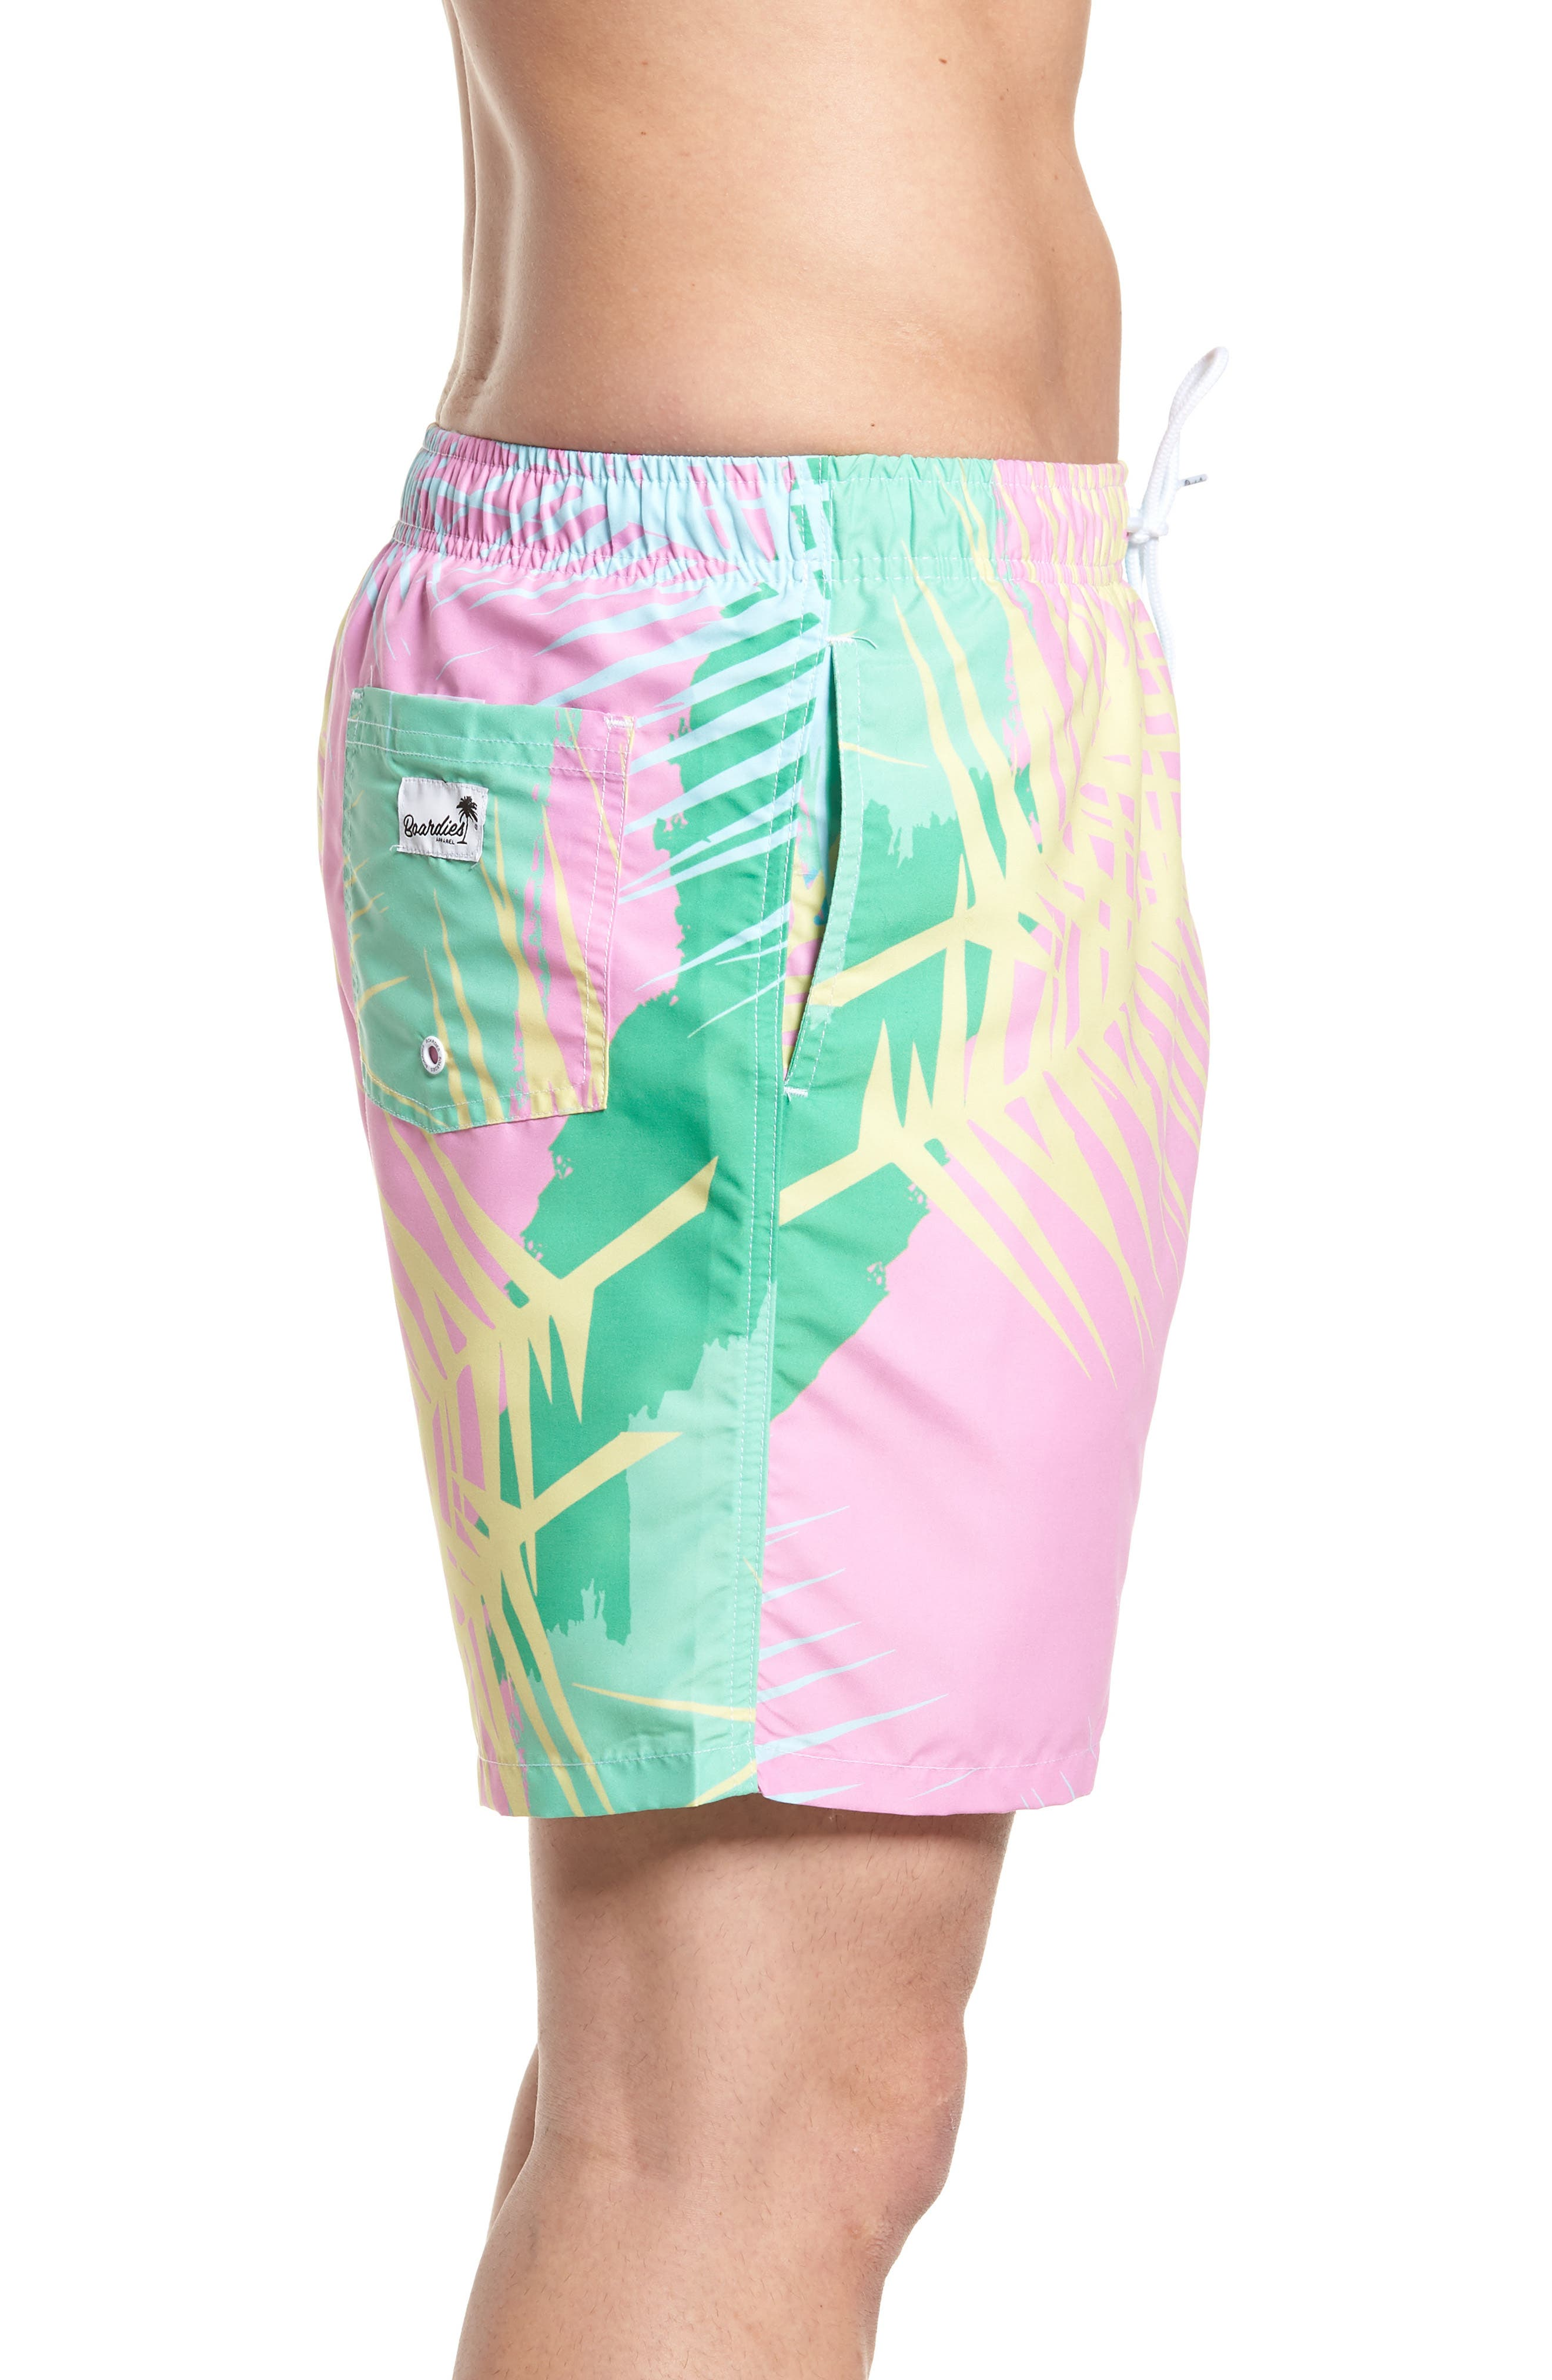 Tropicano Swim Trunks,                             Alternate thumbnail 3, color,                             650